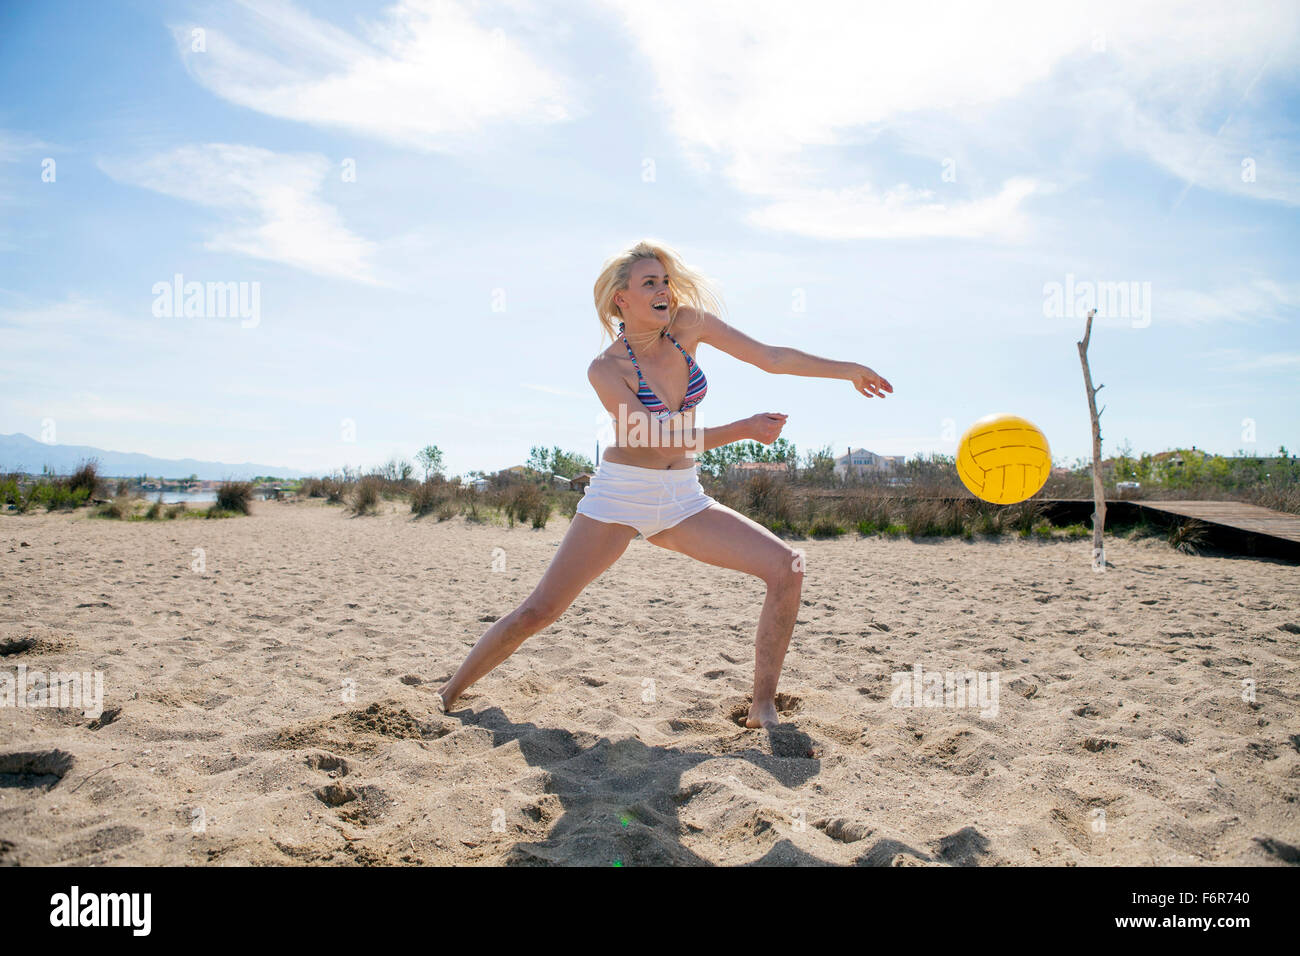 Young woman playing beach volleyball Photo Stock